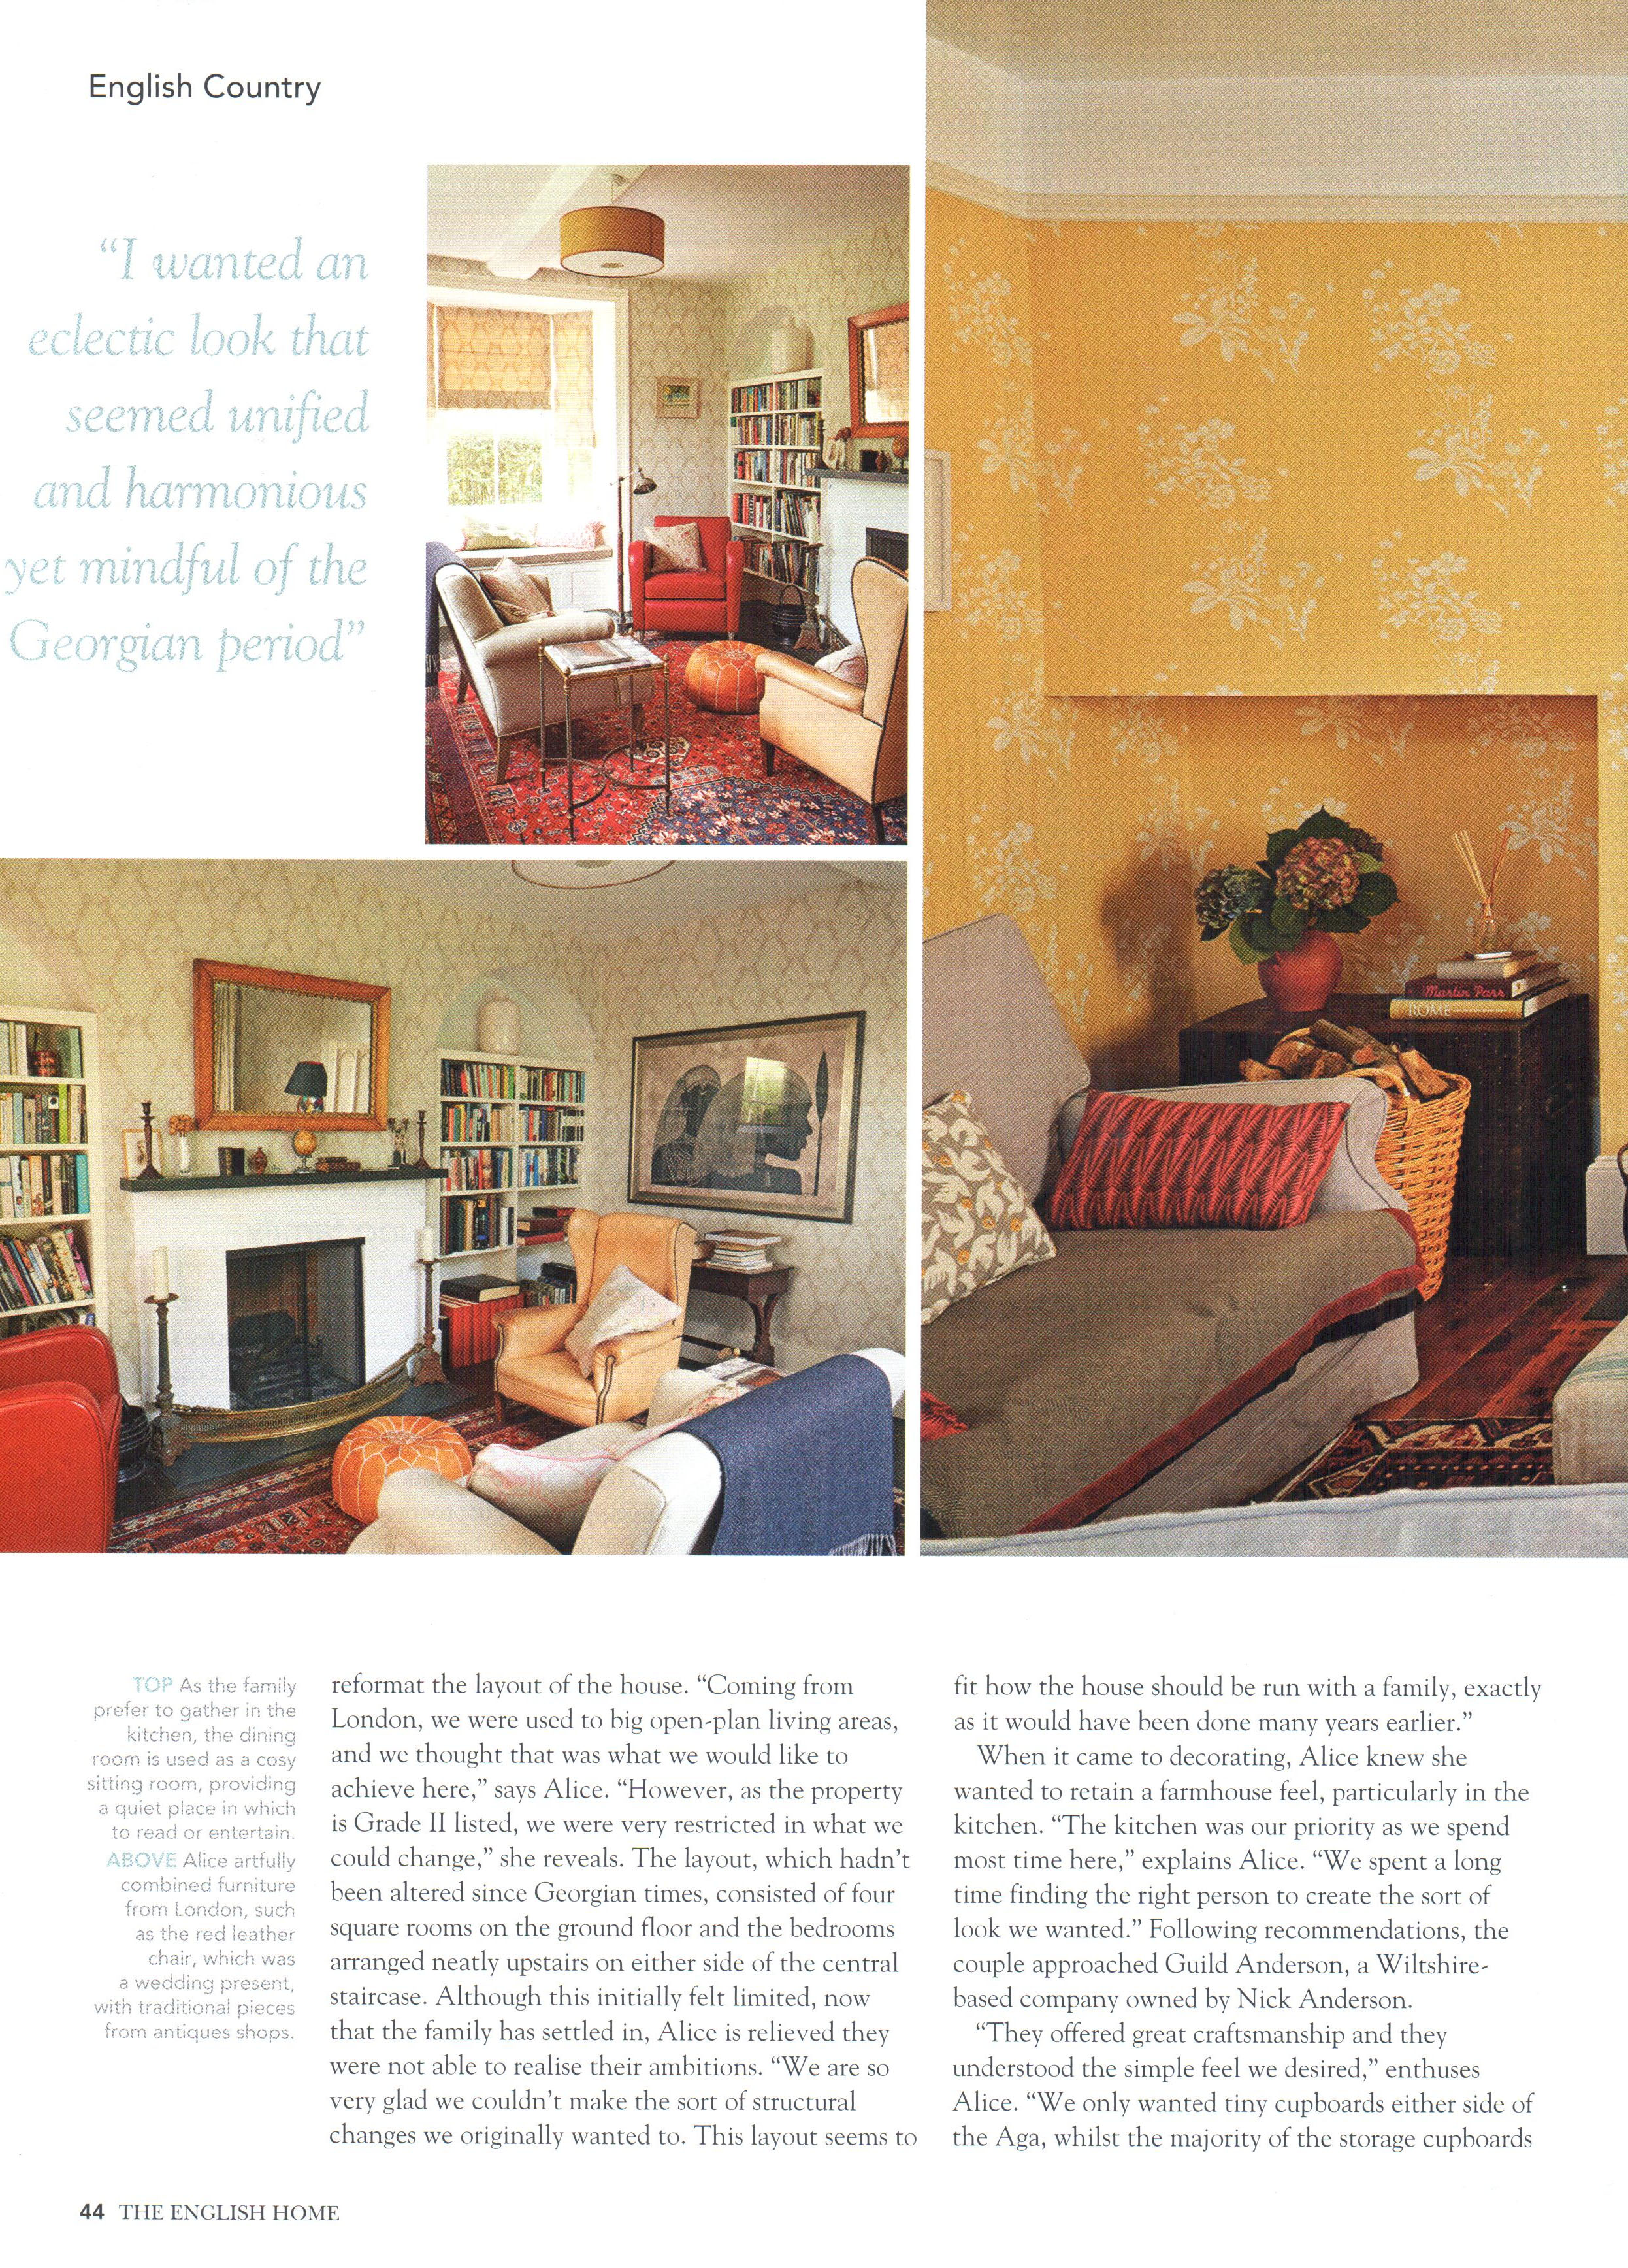 The English Home - May 2014 - Article, page 3